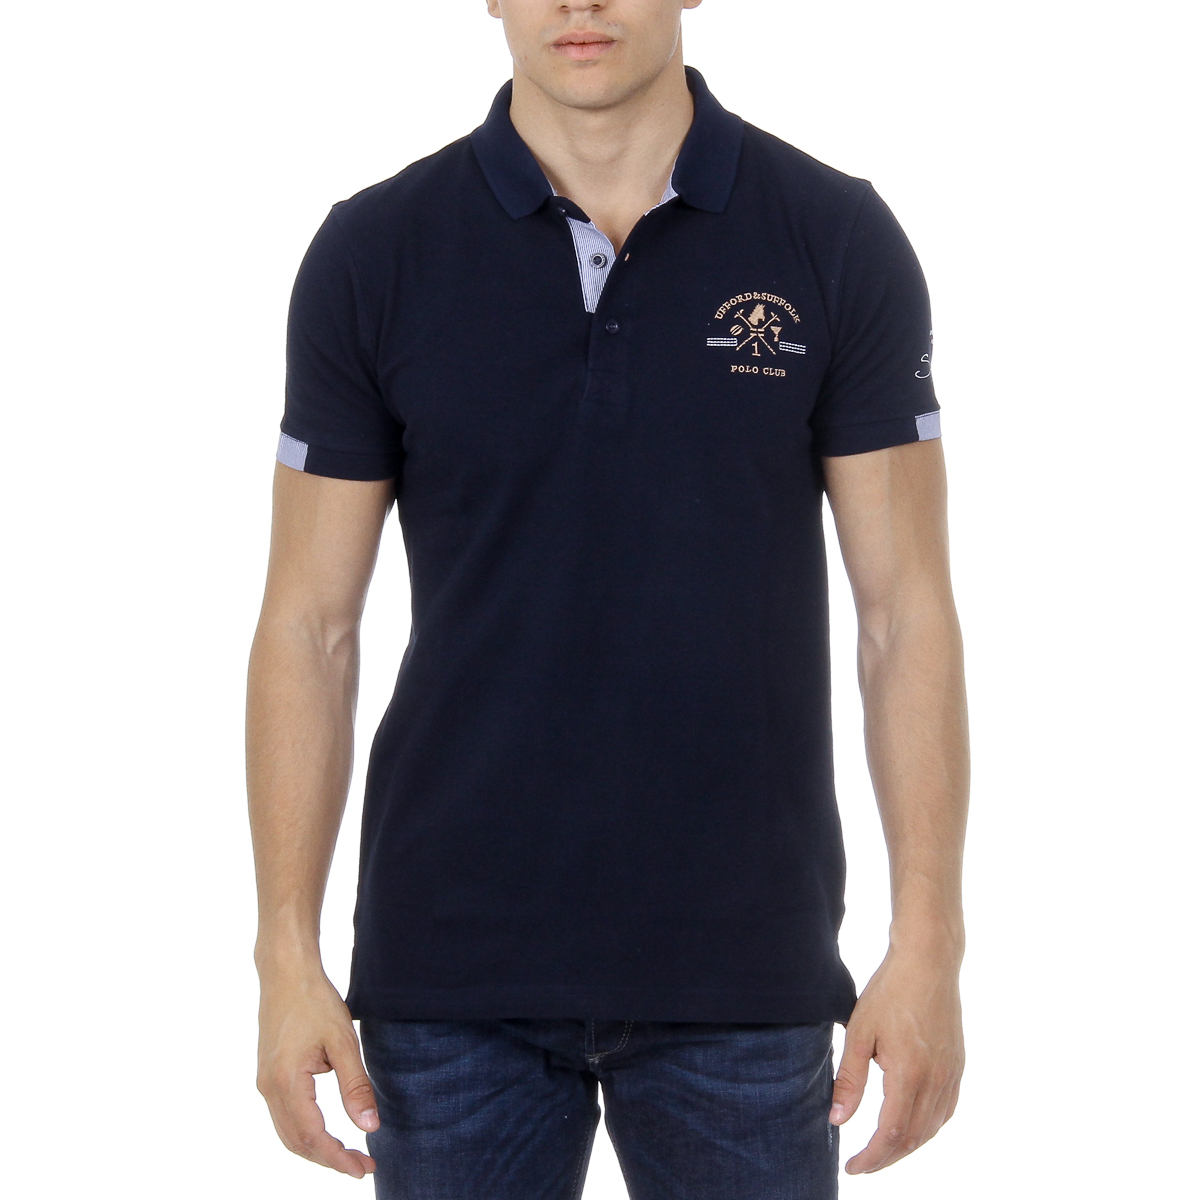 Primary image for Ufford & Suffolk Polo Club Mens Polo Short Sleeves US025 NAVY BLUE